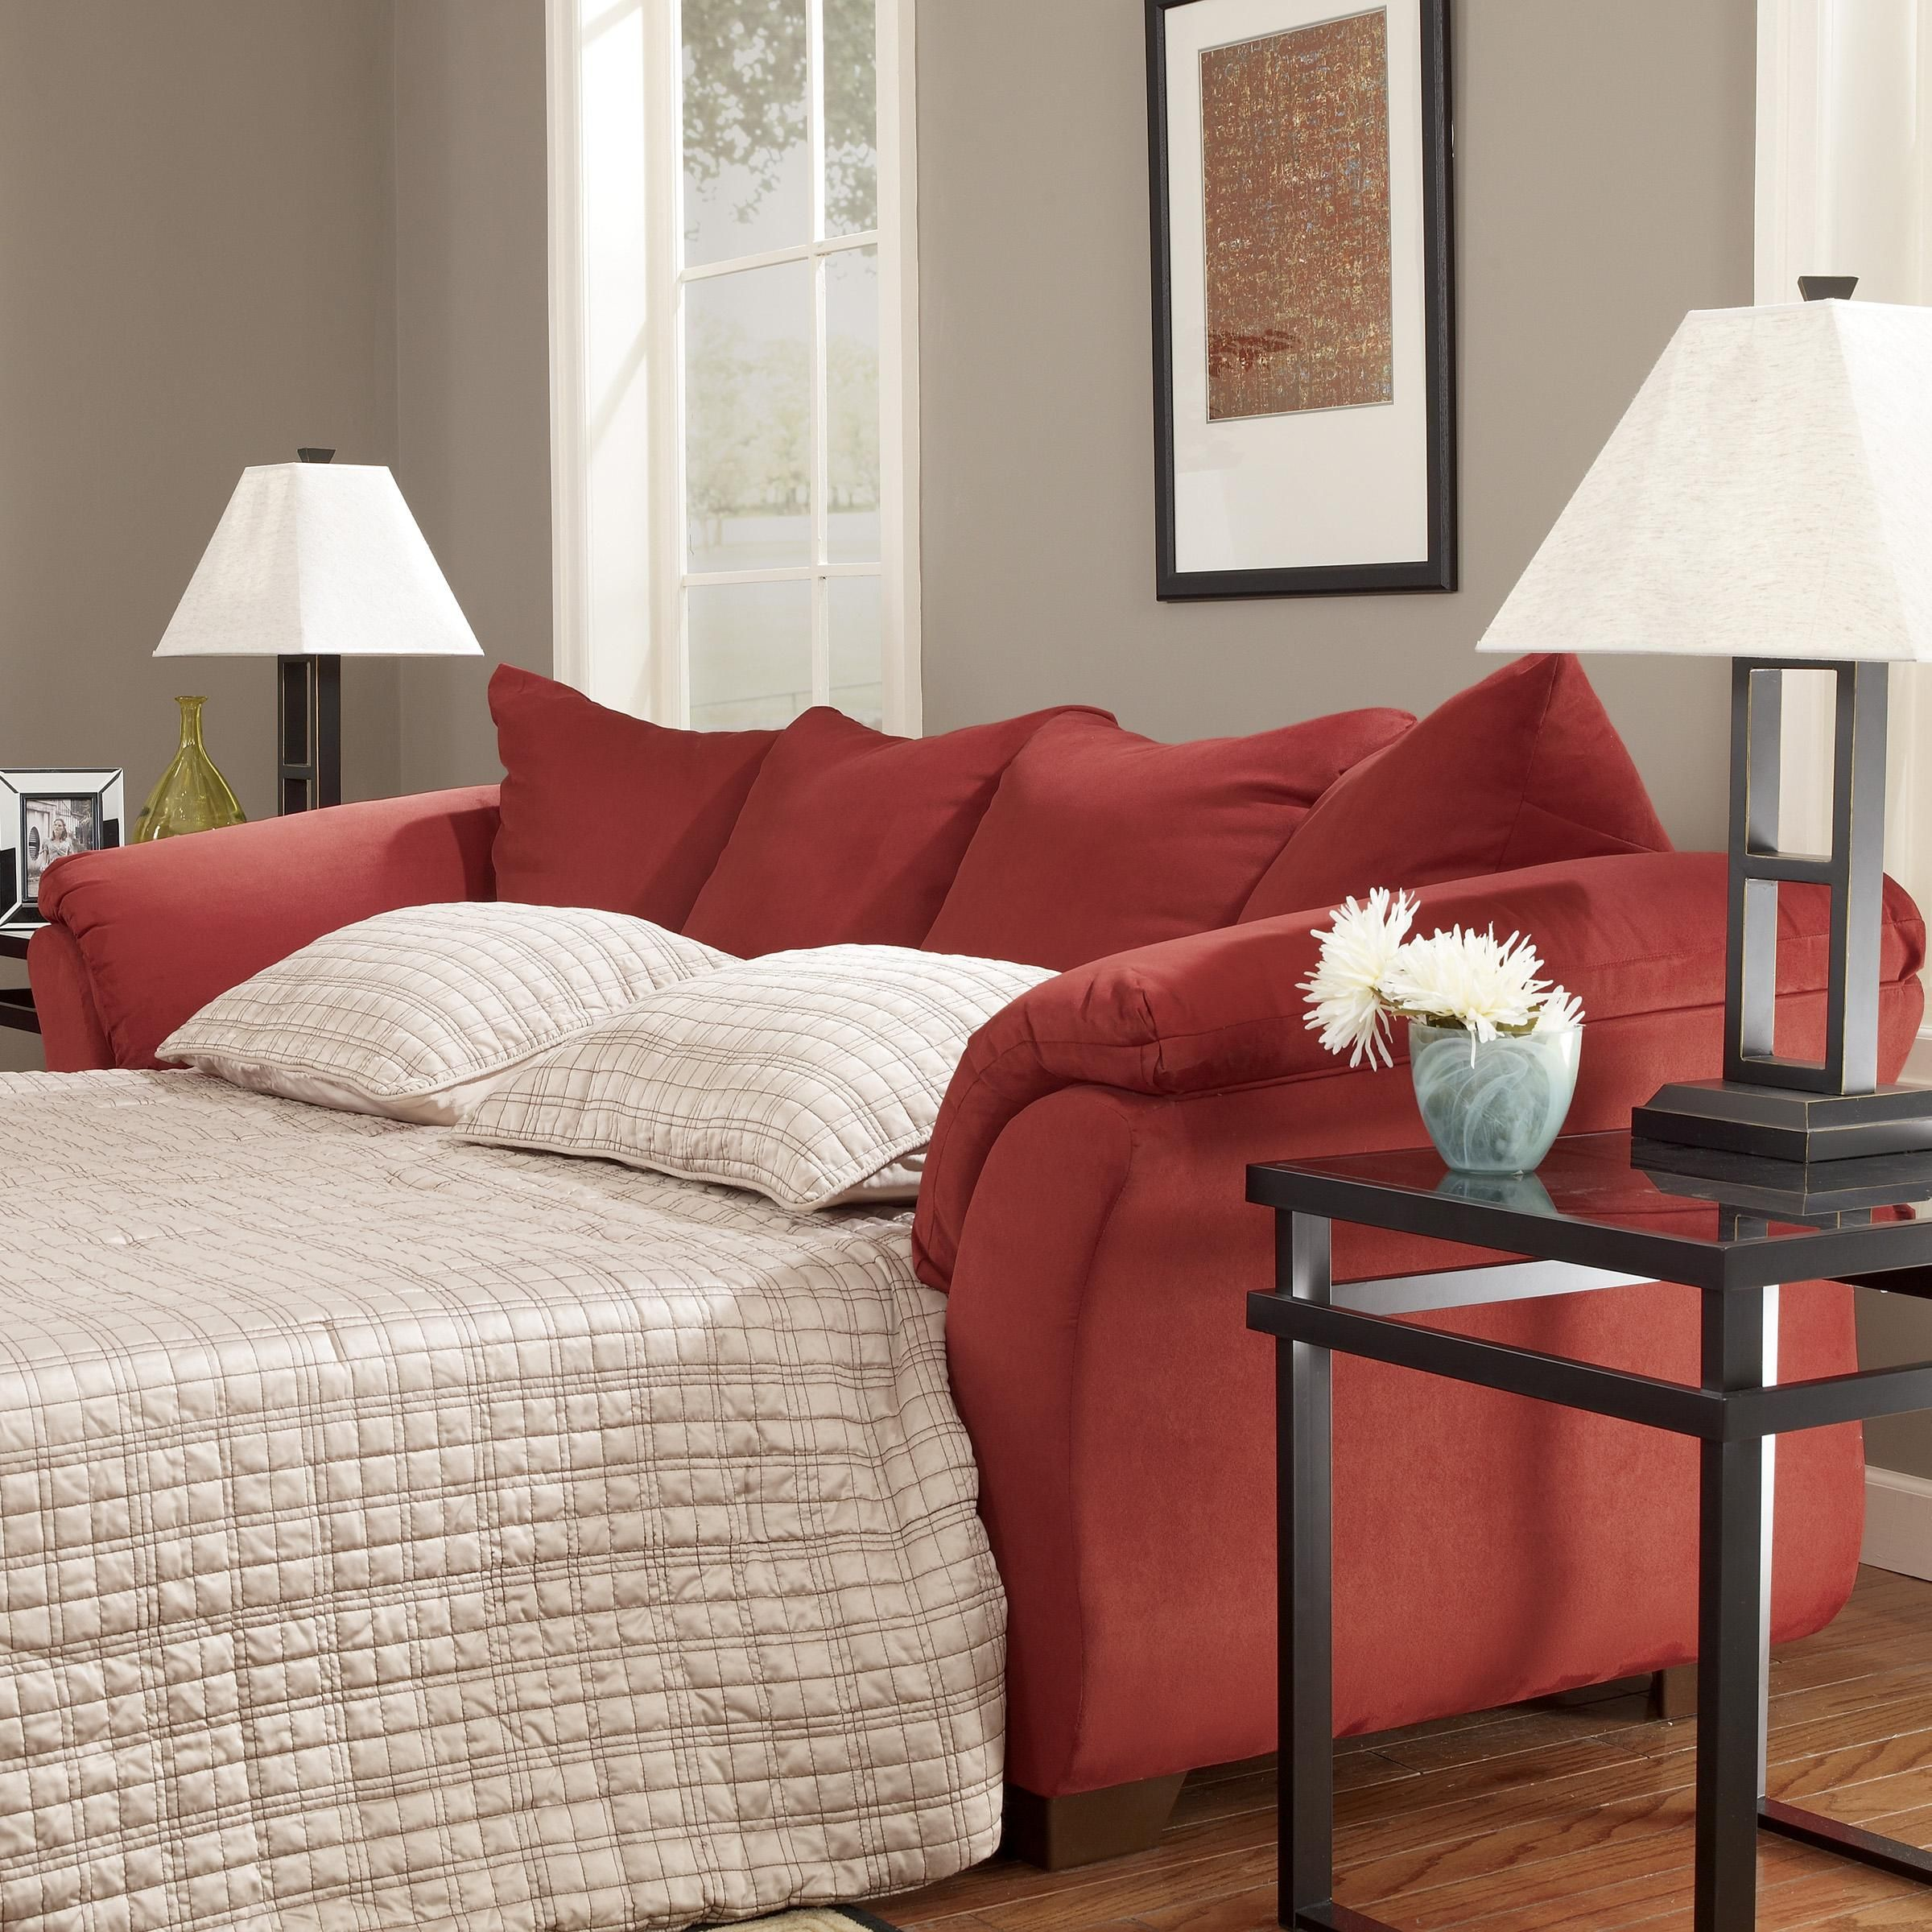 Pin by Darshonnia Lee on Home Décor Comfort mattress